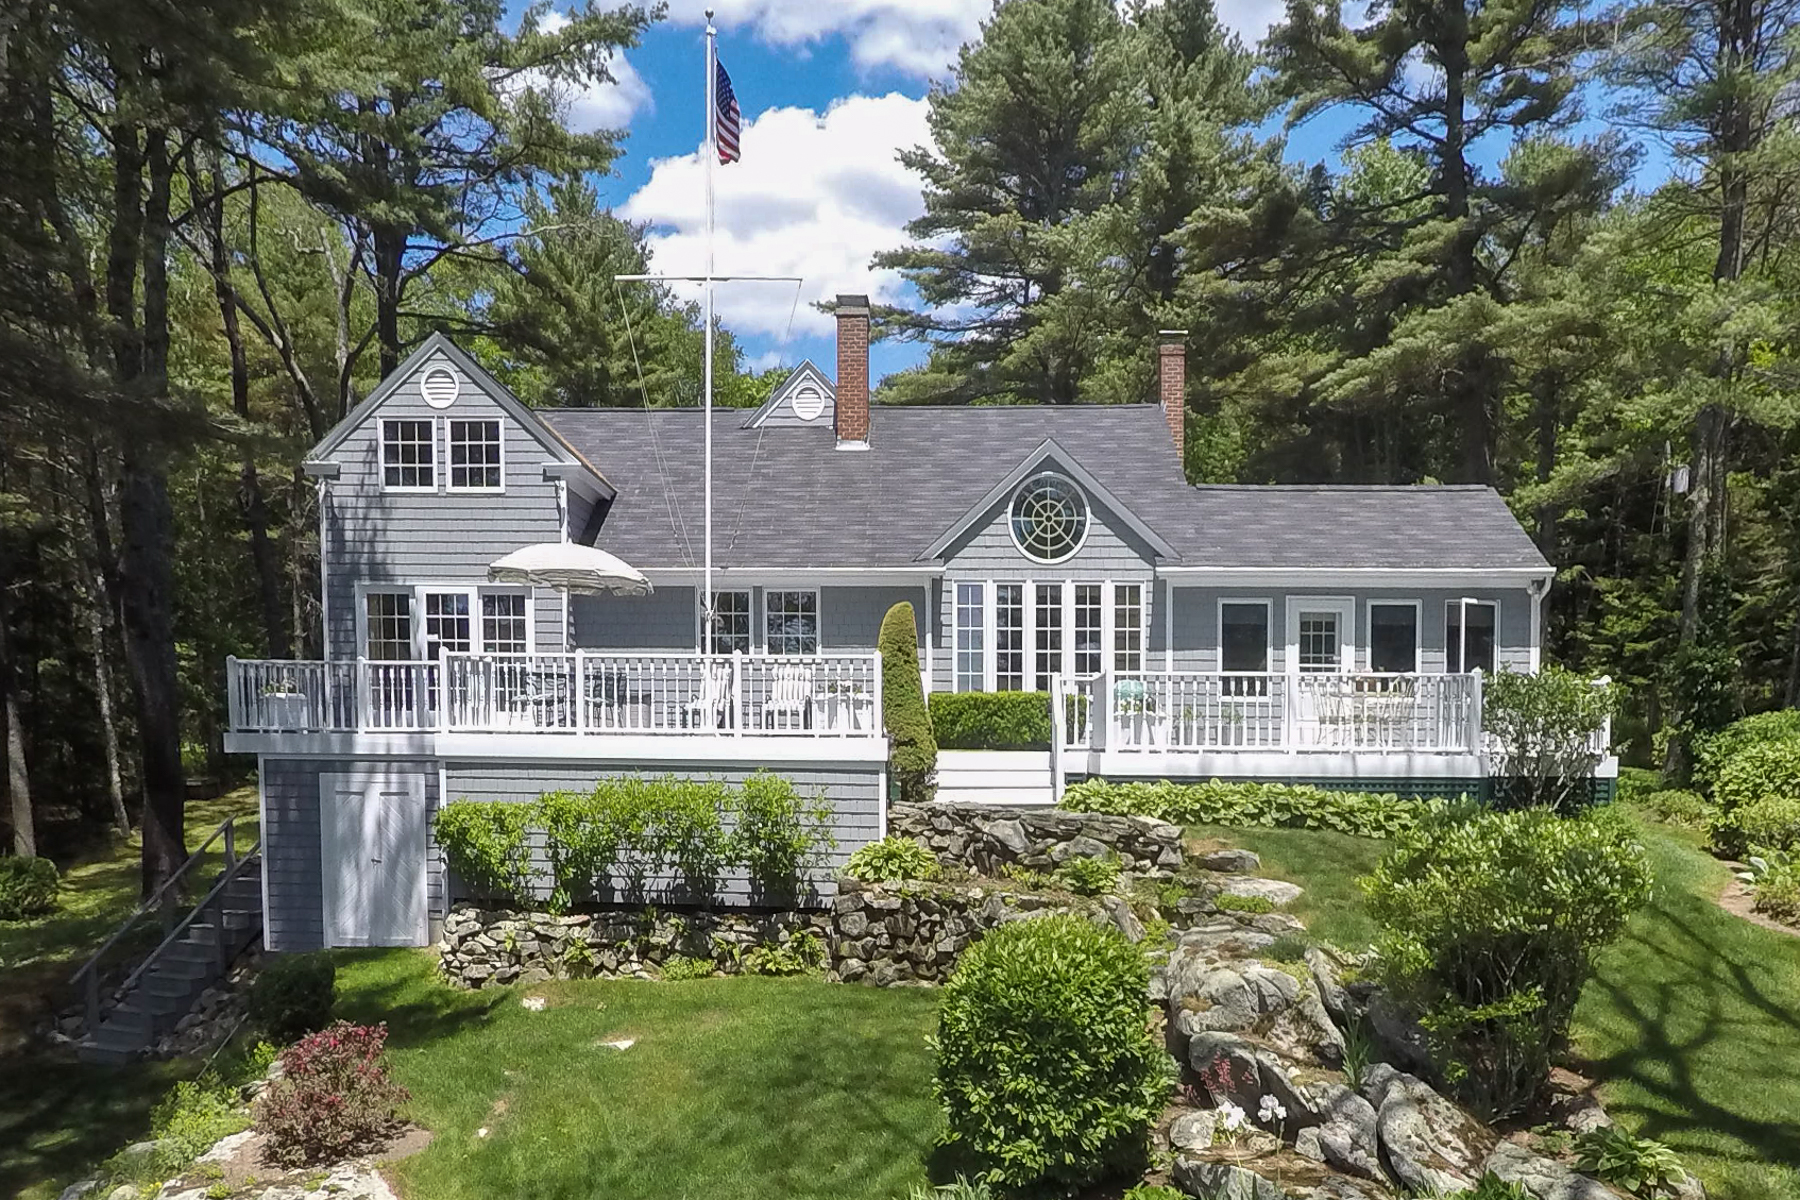 Single Family Home for Sale at Point Road 98 Point Road Brunswick, Maine 04011 United States